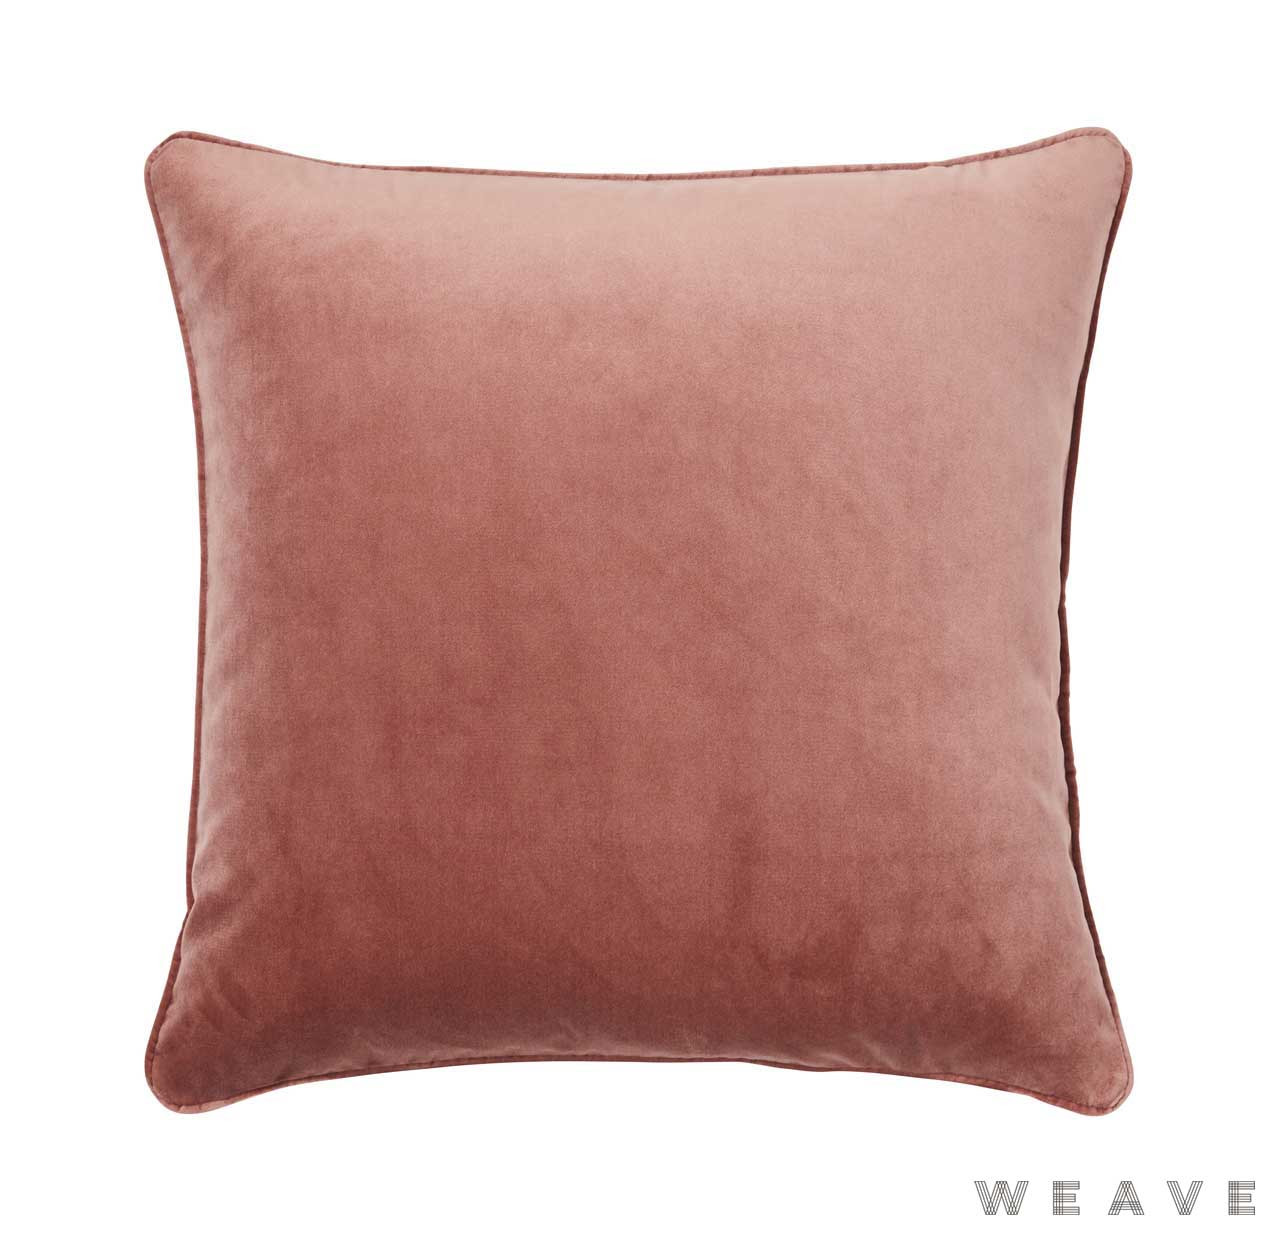 Weave - Zoe Cushion - Blush (Pack of 2)  | Cushion Fabric - Plain, Red, Traditional, Weave